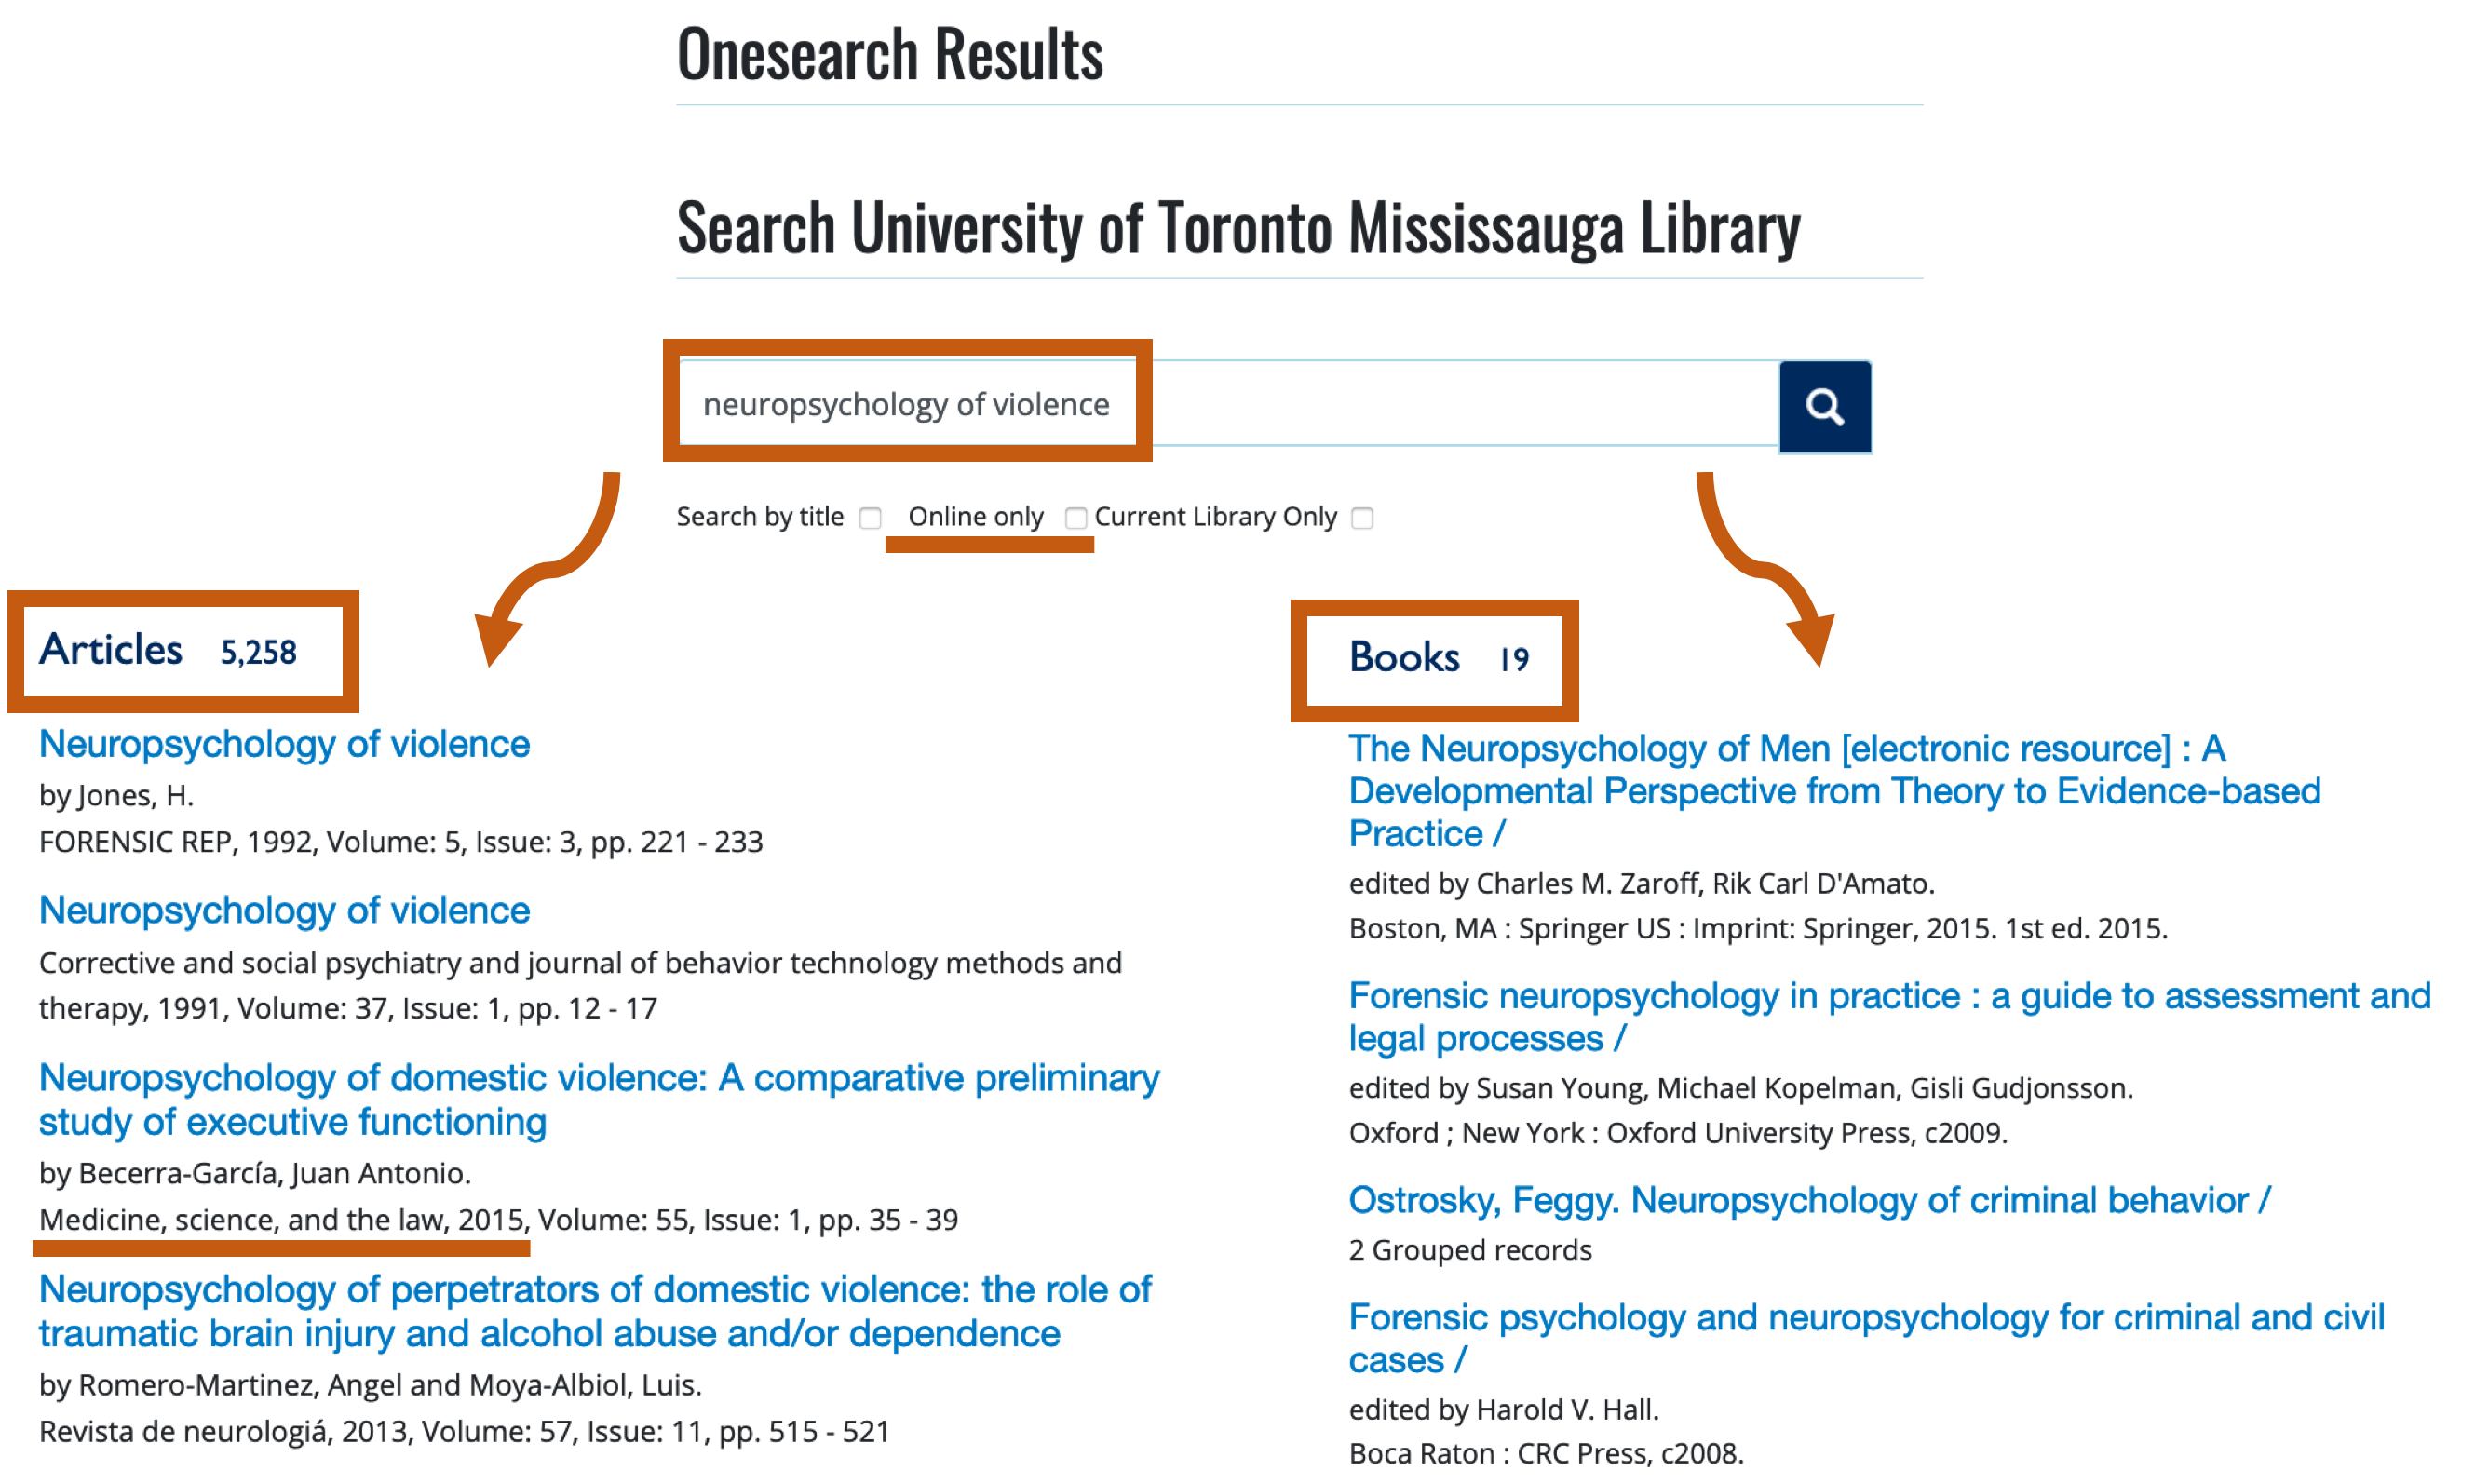 onesearch for books and articles